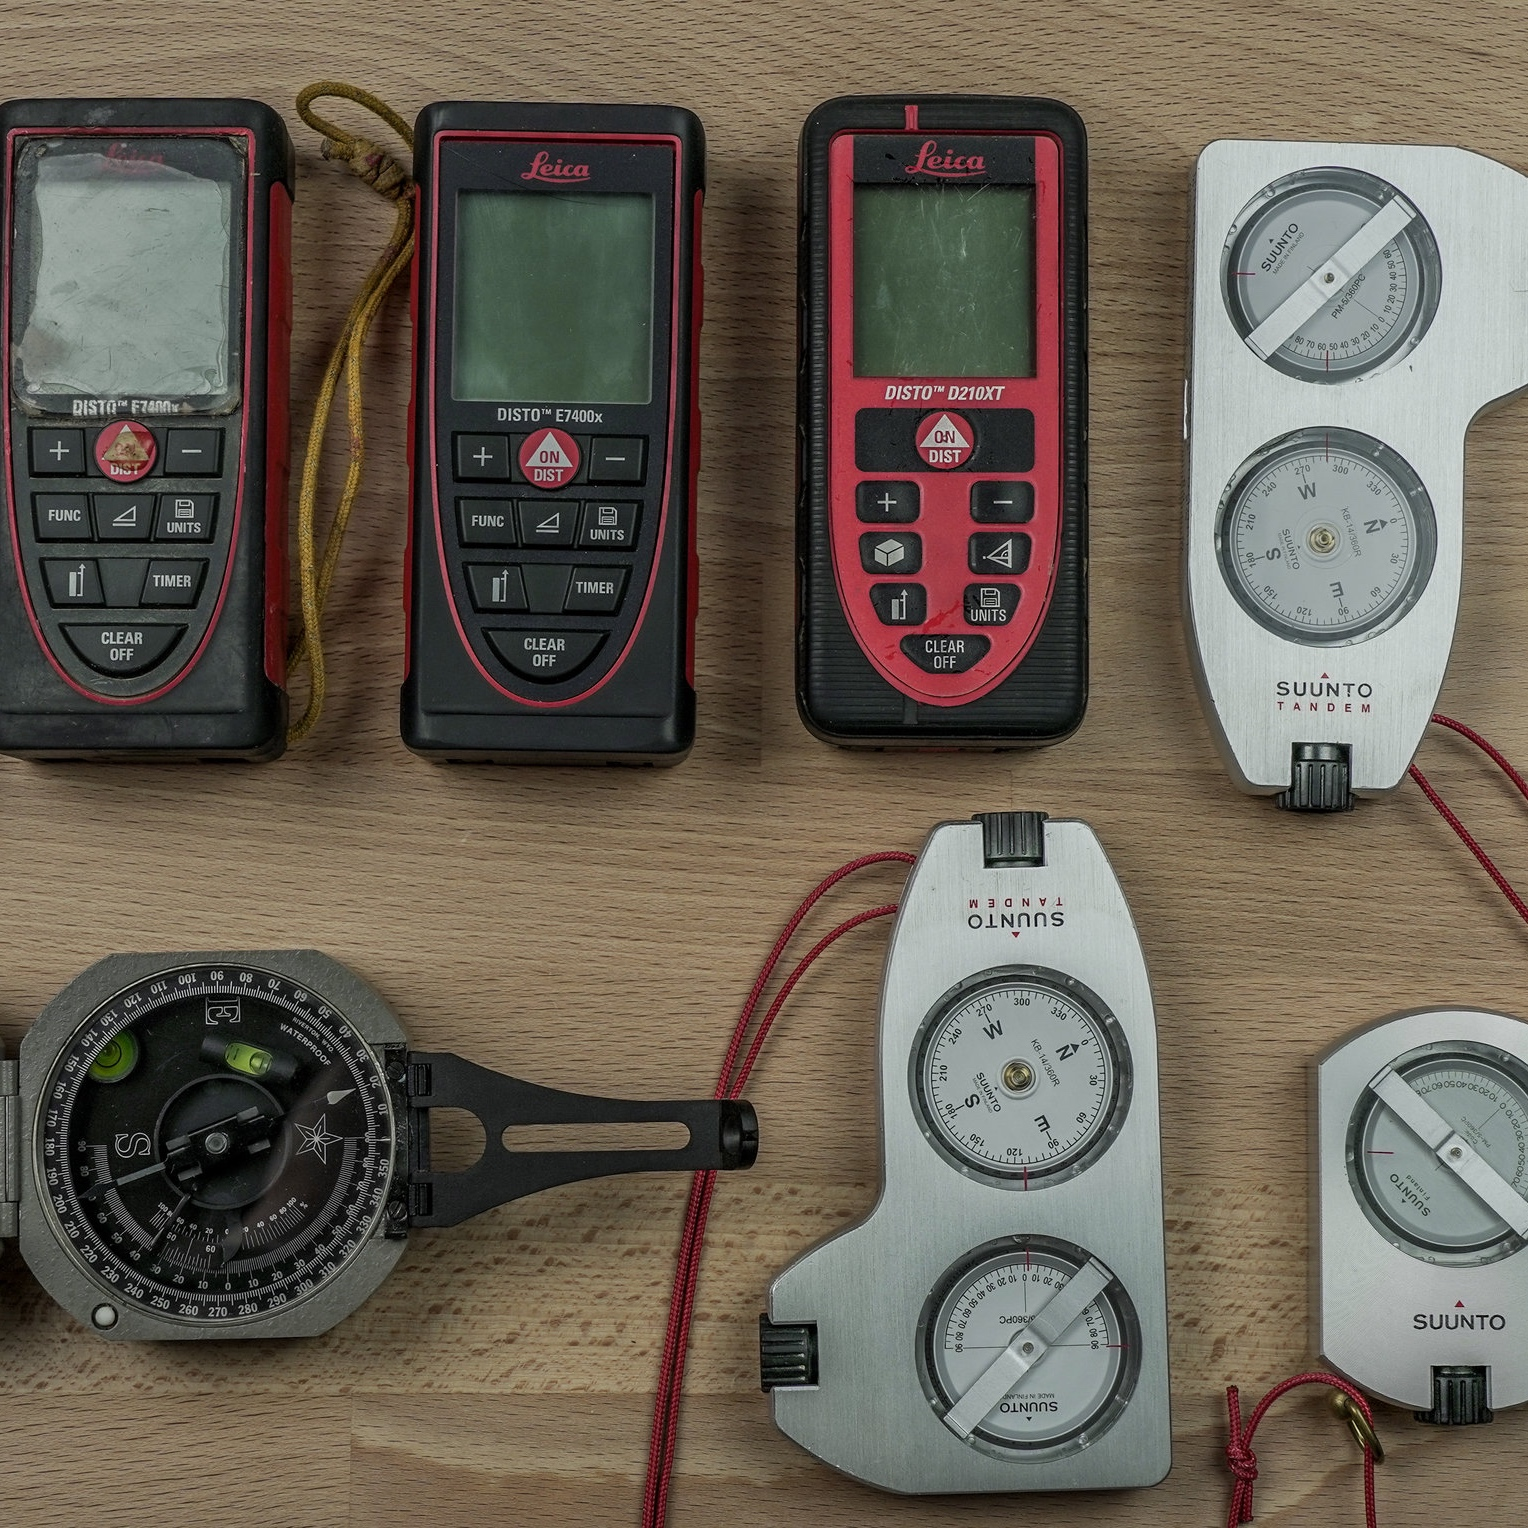 Cave survey instruments - The fundamental data that is collected during a cave survey includes the distance, azimuth and inclination between a series of sequential survey stations. There are both analog and digital instruments used to take these measurements.